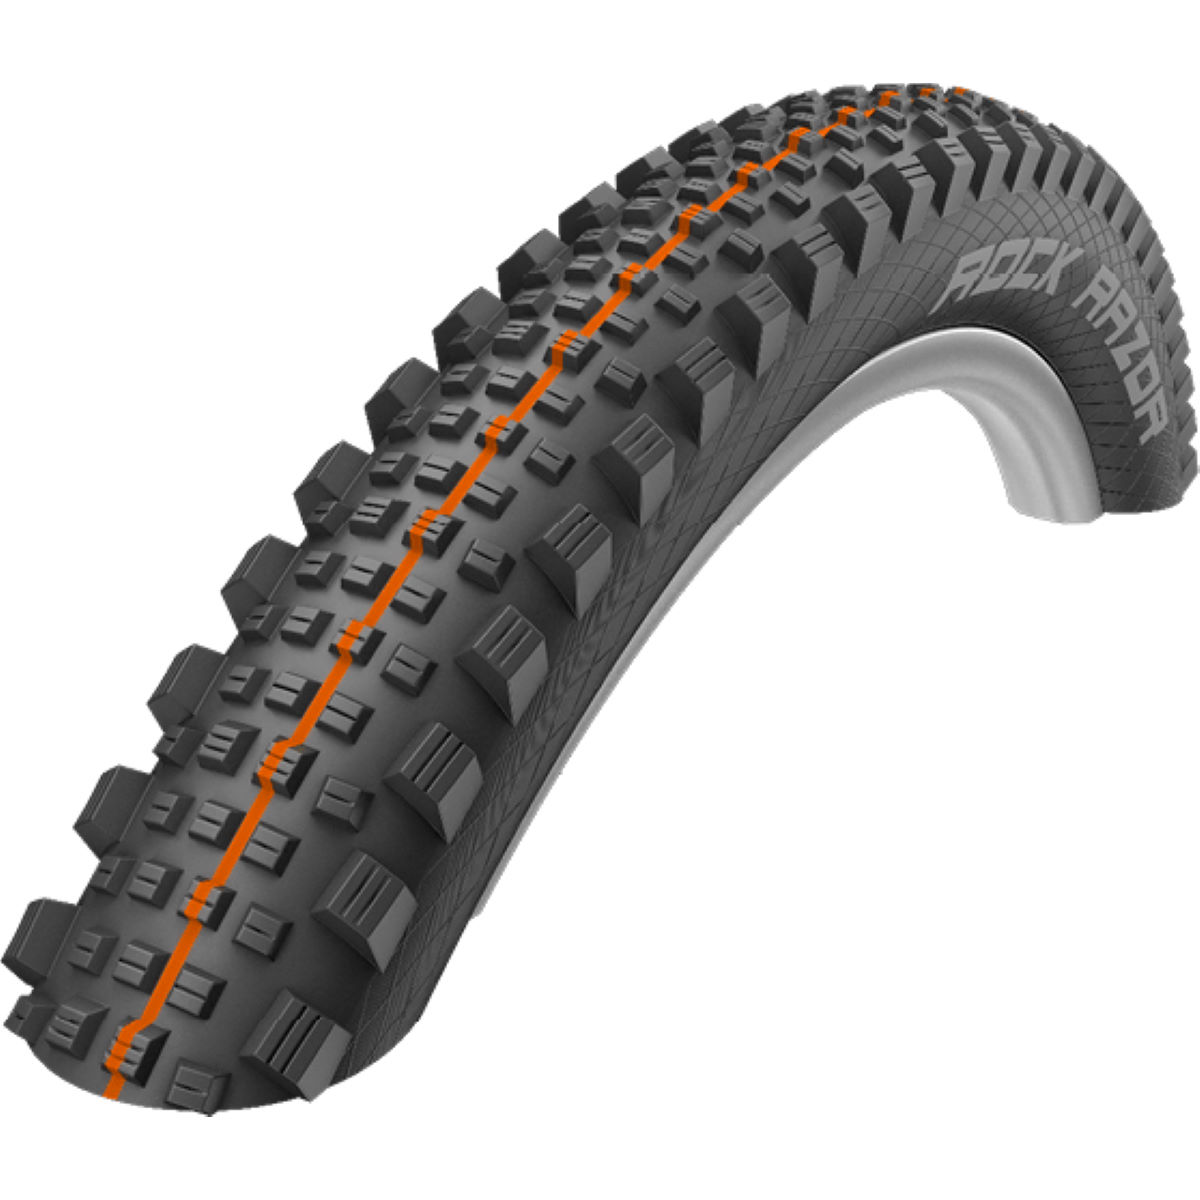 Pneu VTT Schwalbe Rock Razor Addix SuperGravity - 27.5' (650b) 2.35' F